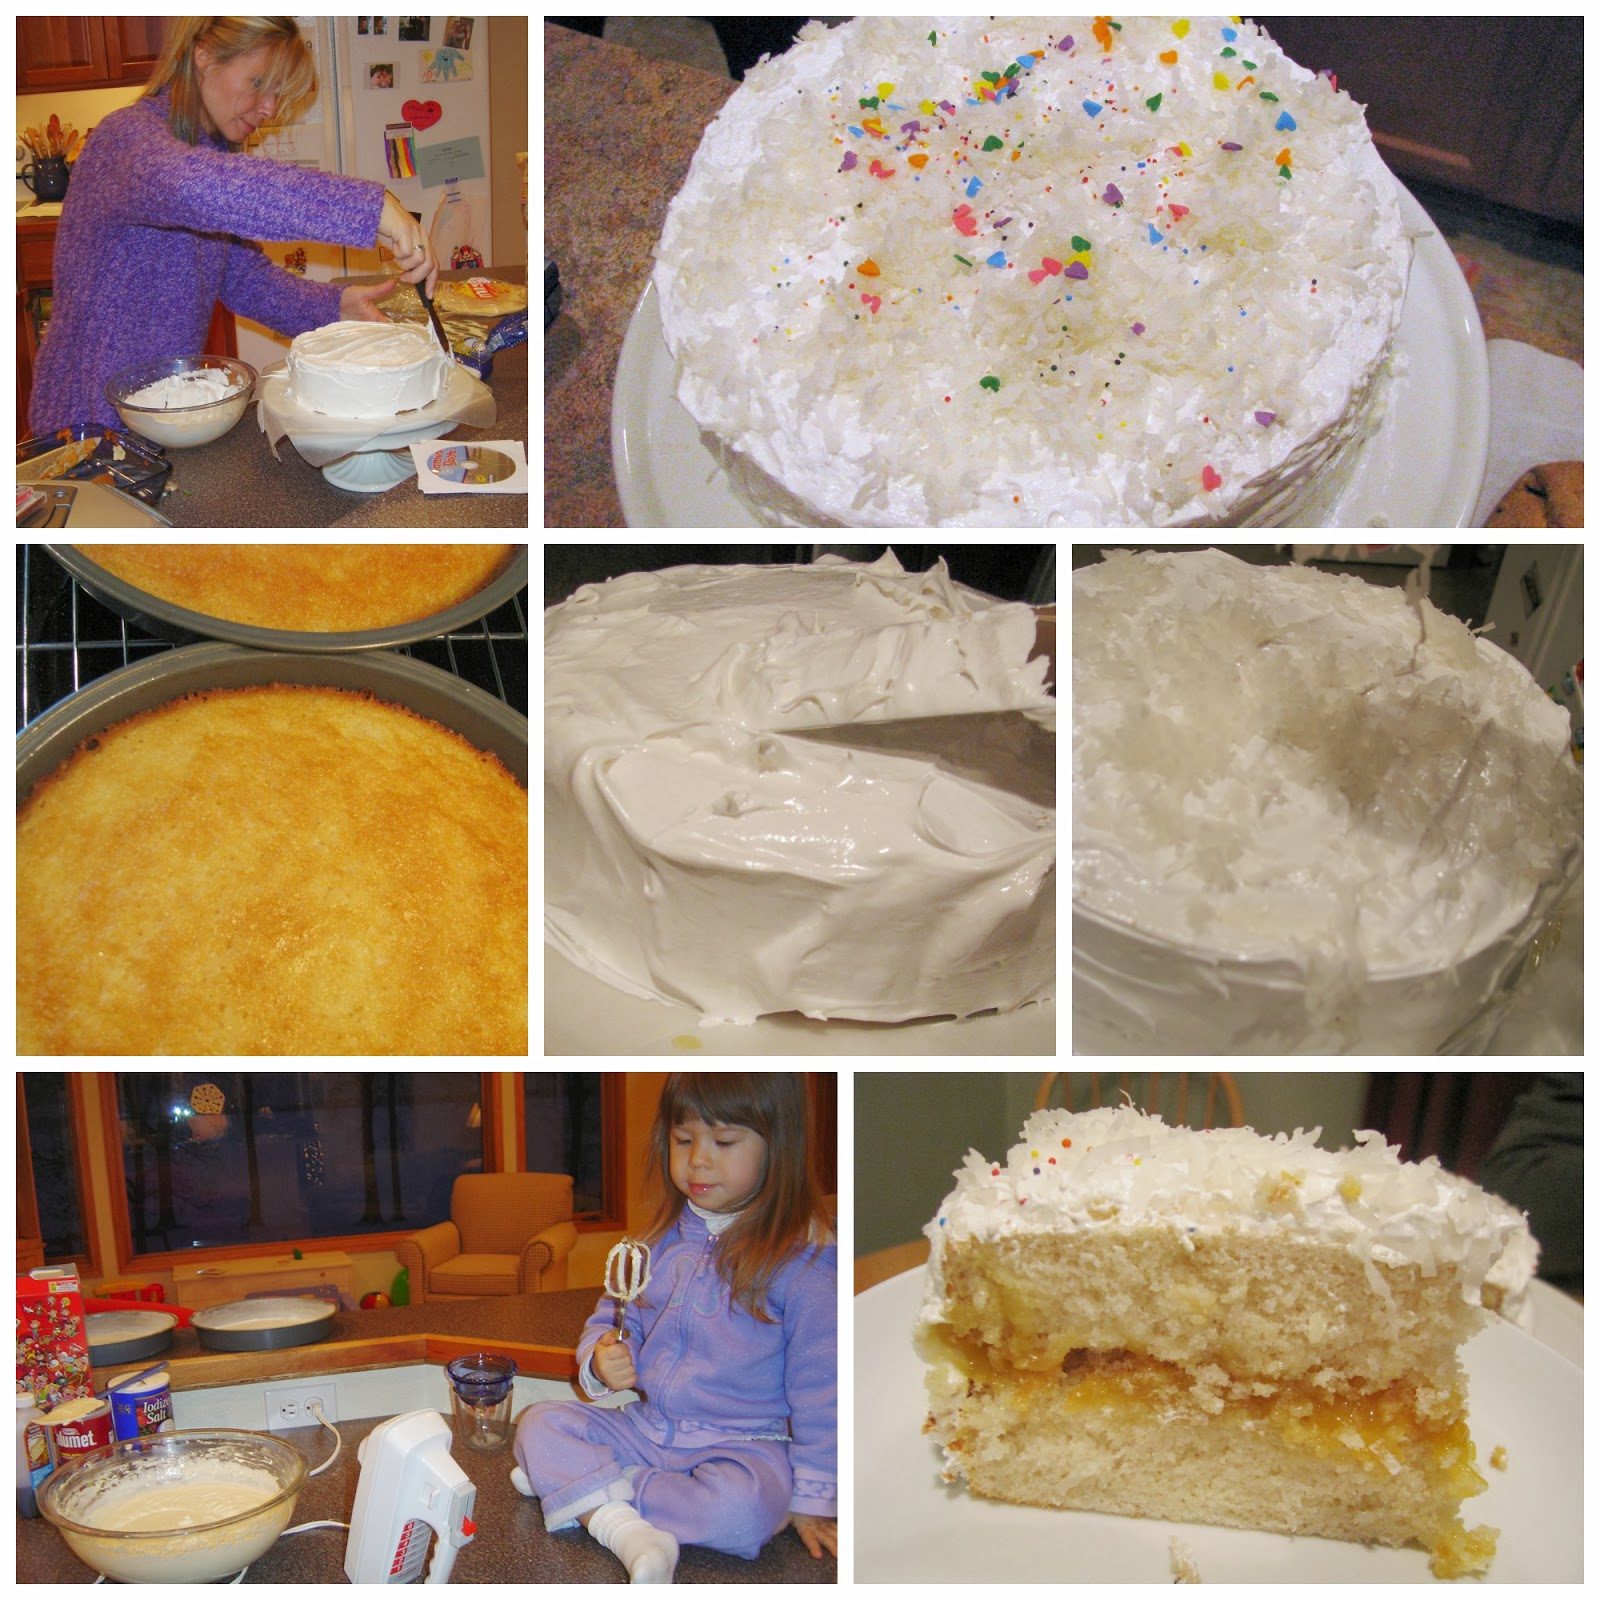 Here Taste This Silver White Cake With White Mountain Frosting